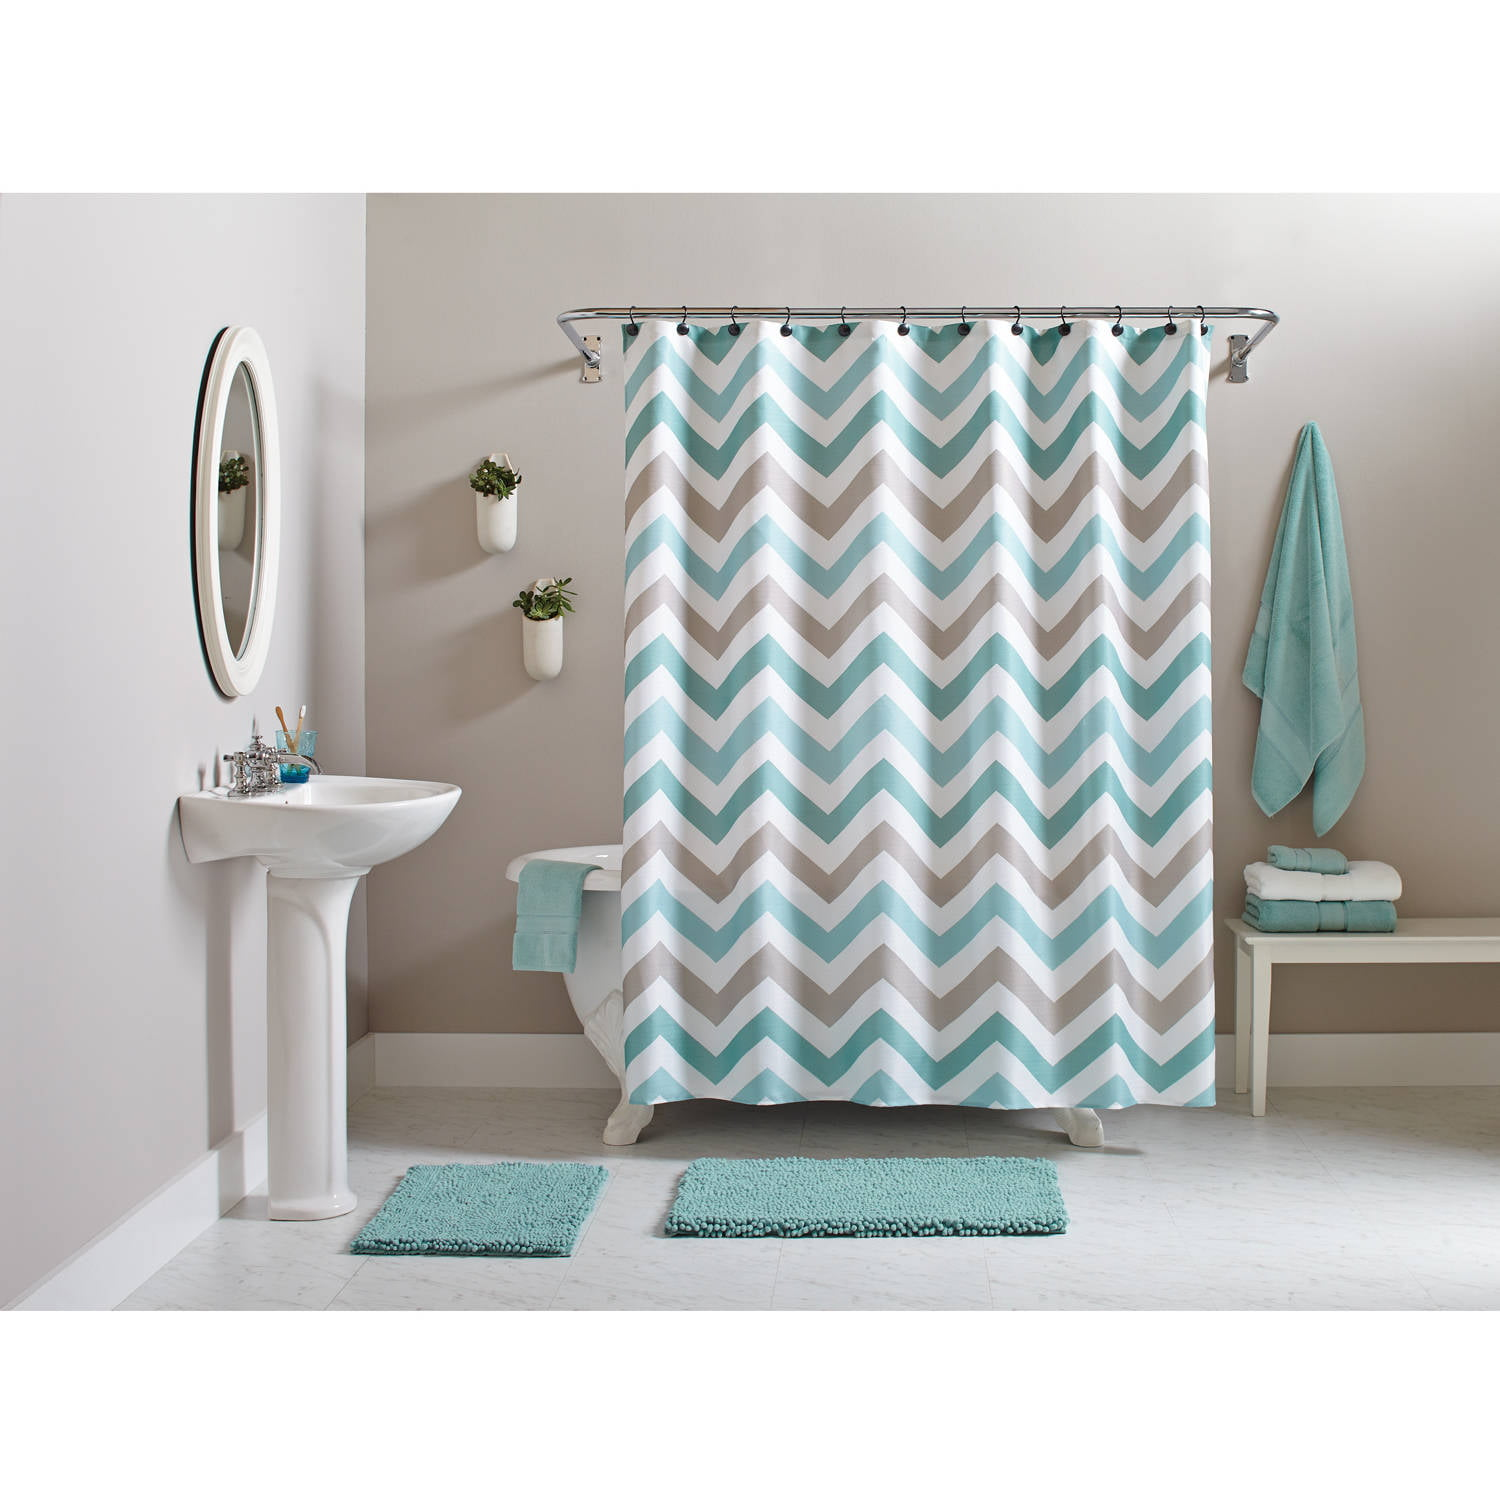 Bathroom decor teal for Teal and brown bathroom accessories